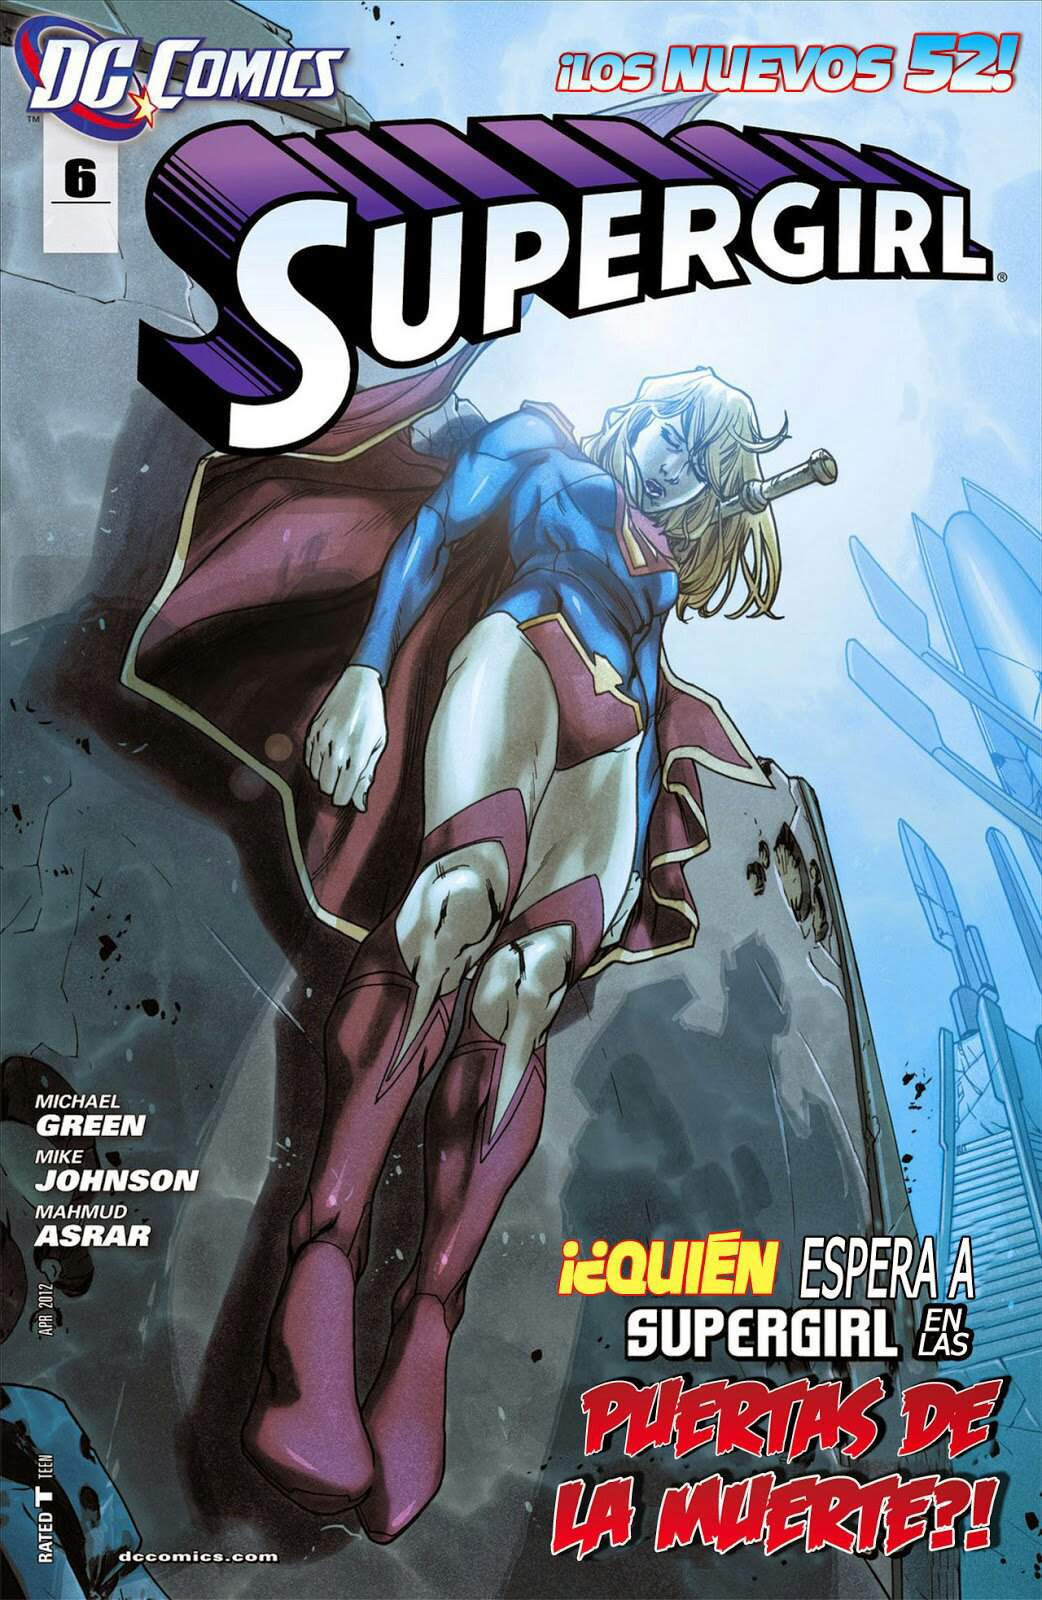 Supergirl #6 - The New 52 | Wiki | Supergirl en Español Amino